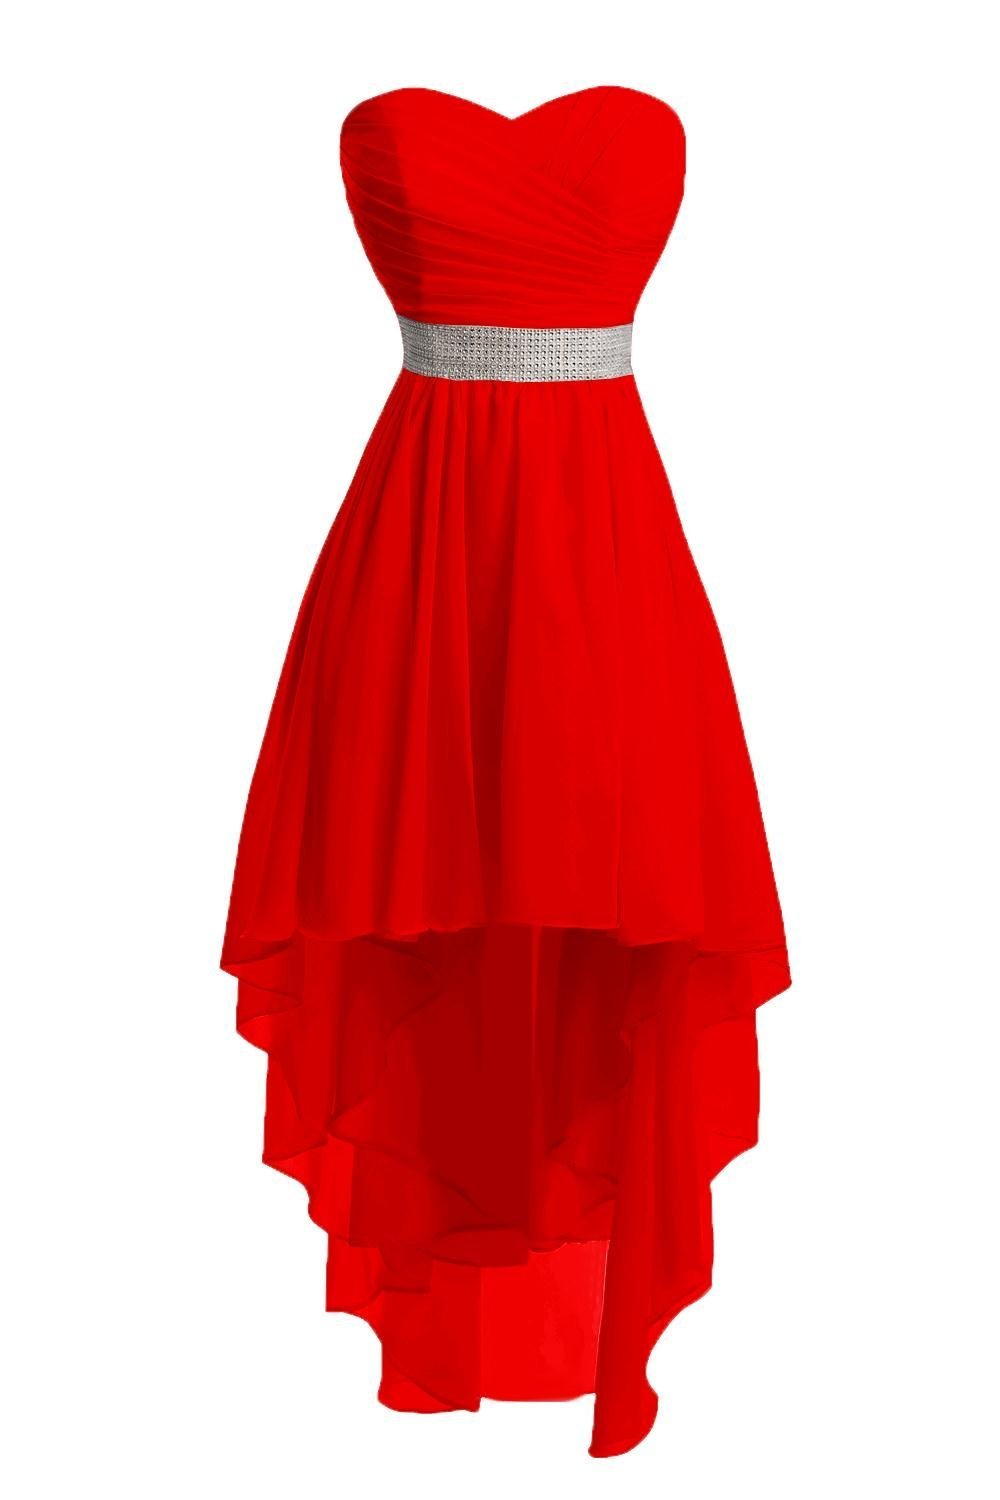 Anna's Bridal Women's Waist Beaded Red Bridesmaid Dresses Short Wedding Party Gowns US8